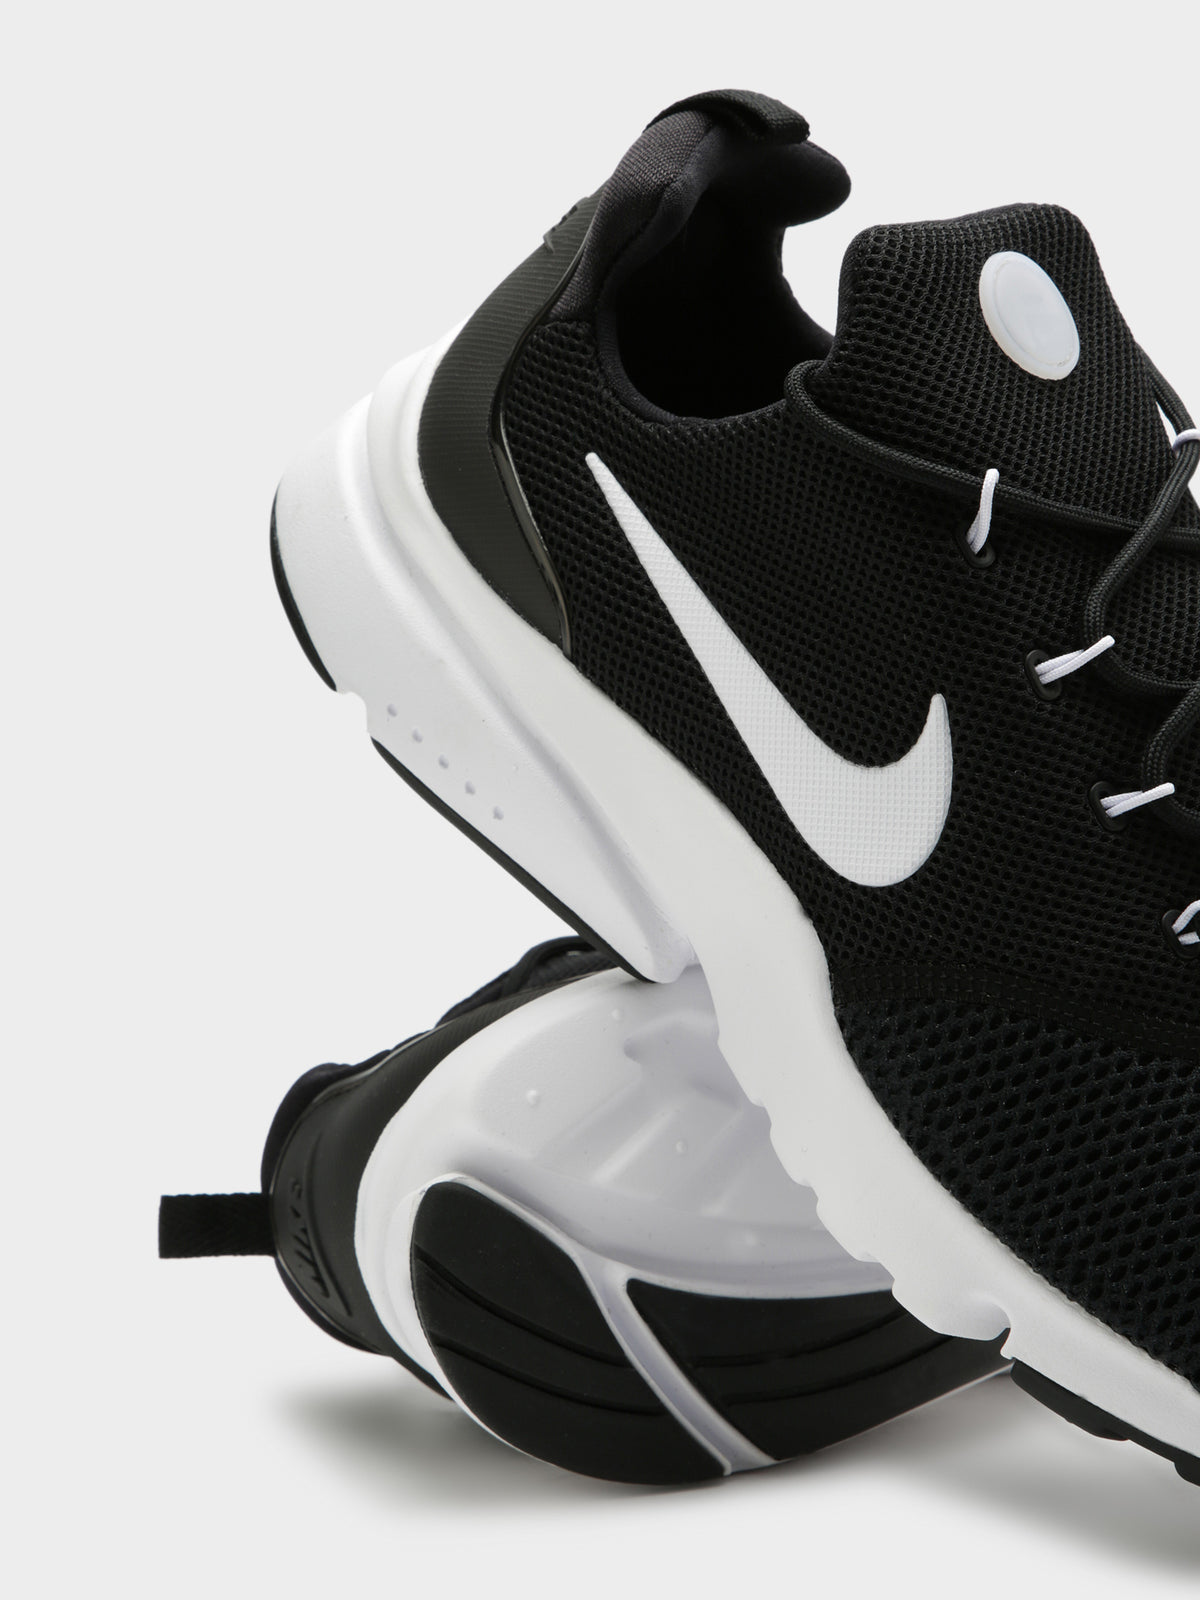 Mens Presto Fly Sneakers in Black & White